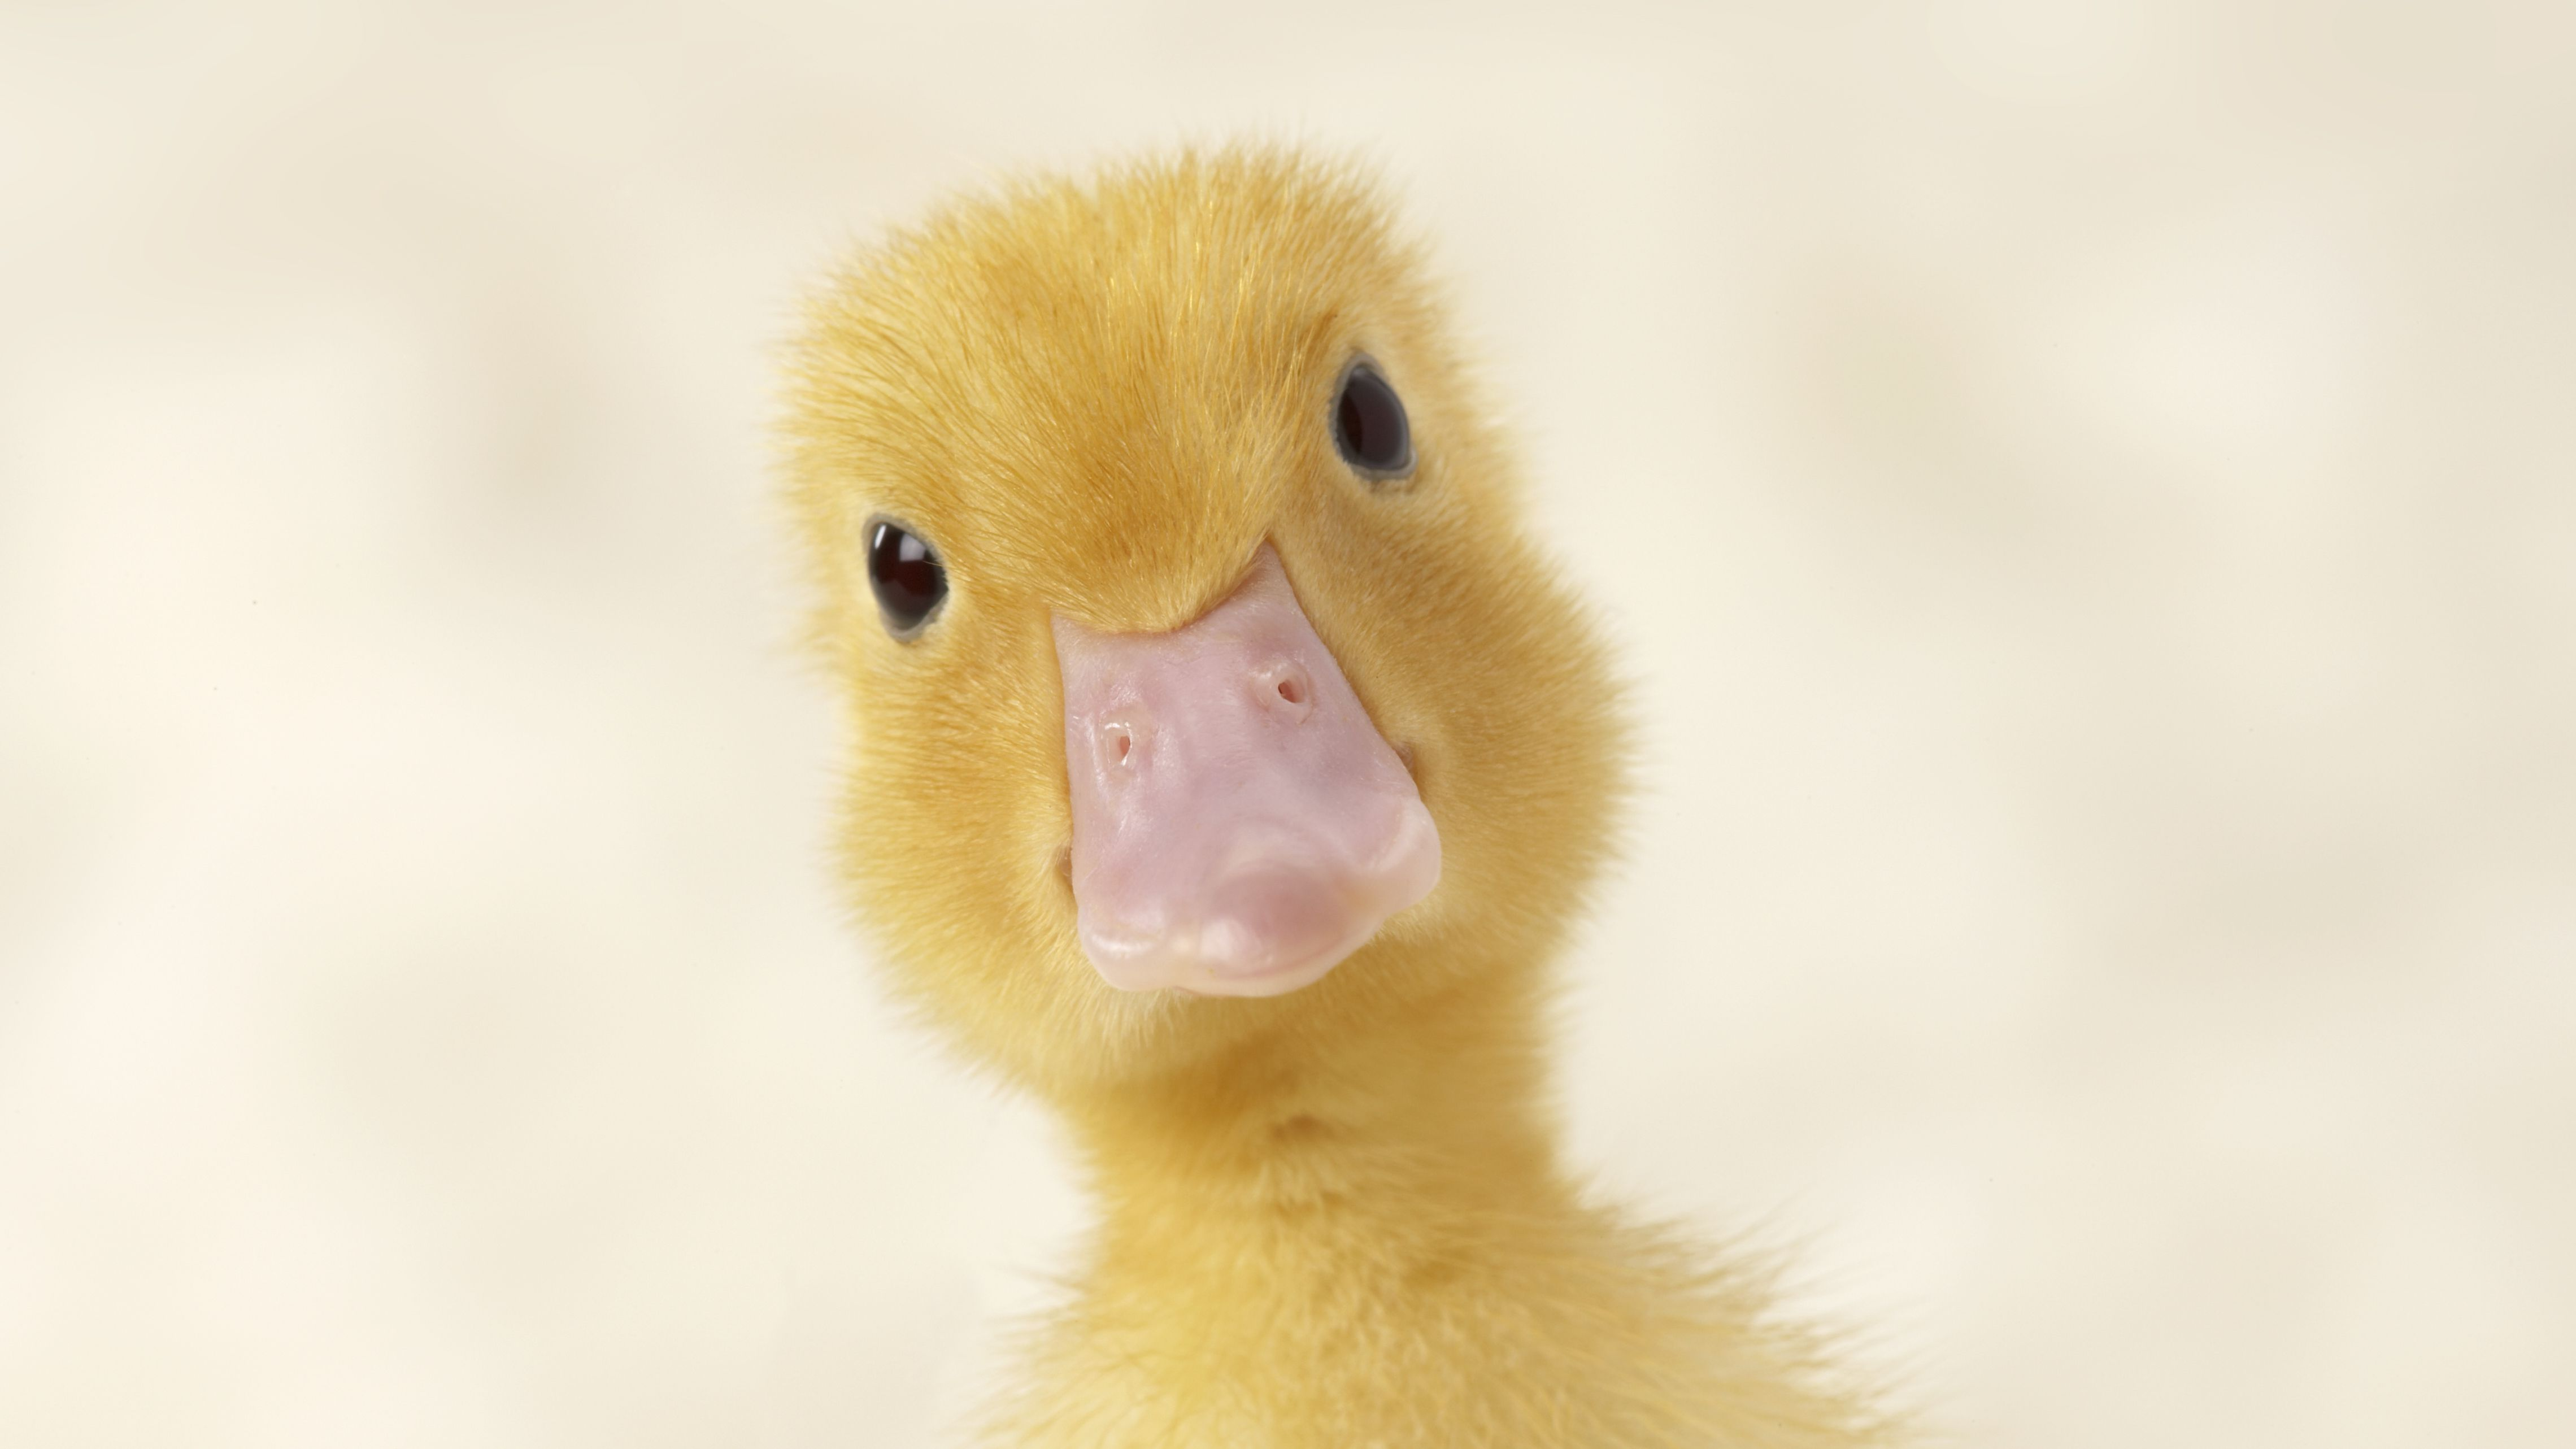 duckling-close-up-500315849-572917c93df7